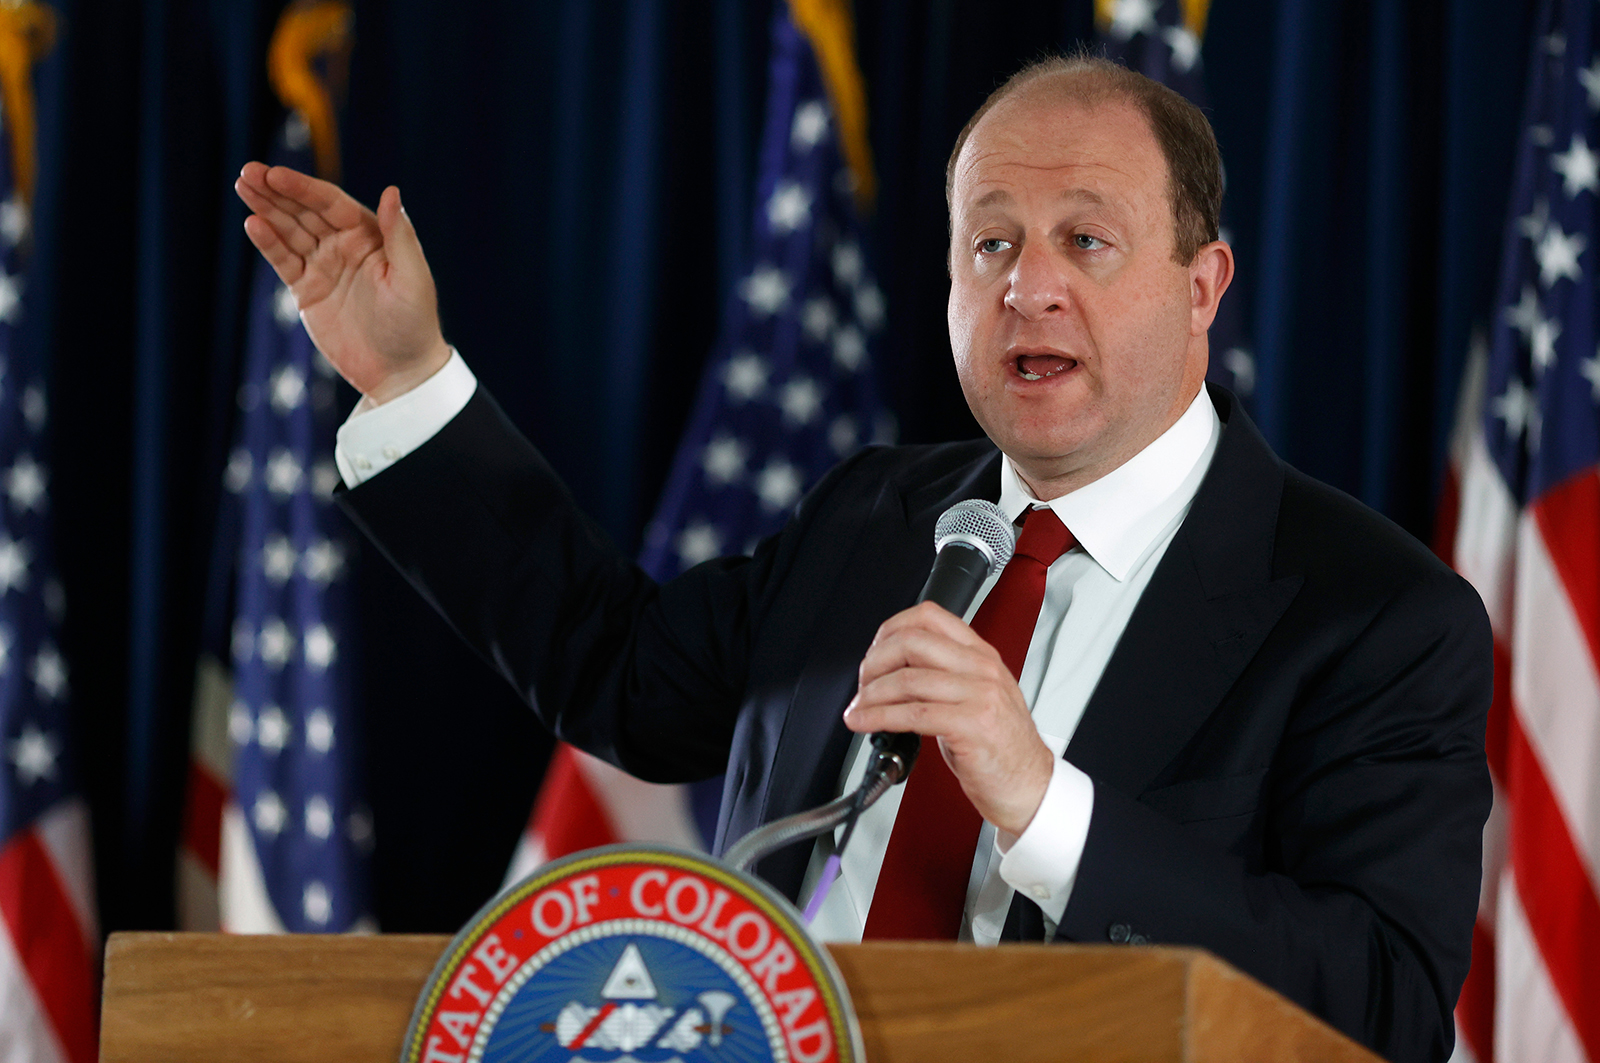 Colorado Gov. Jared Polis speaks during a news conference in Denver, on June 9.